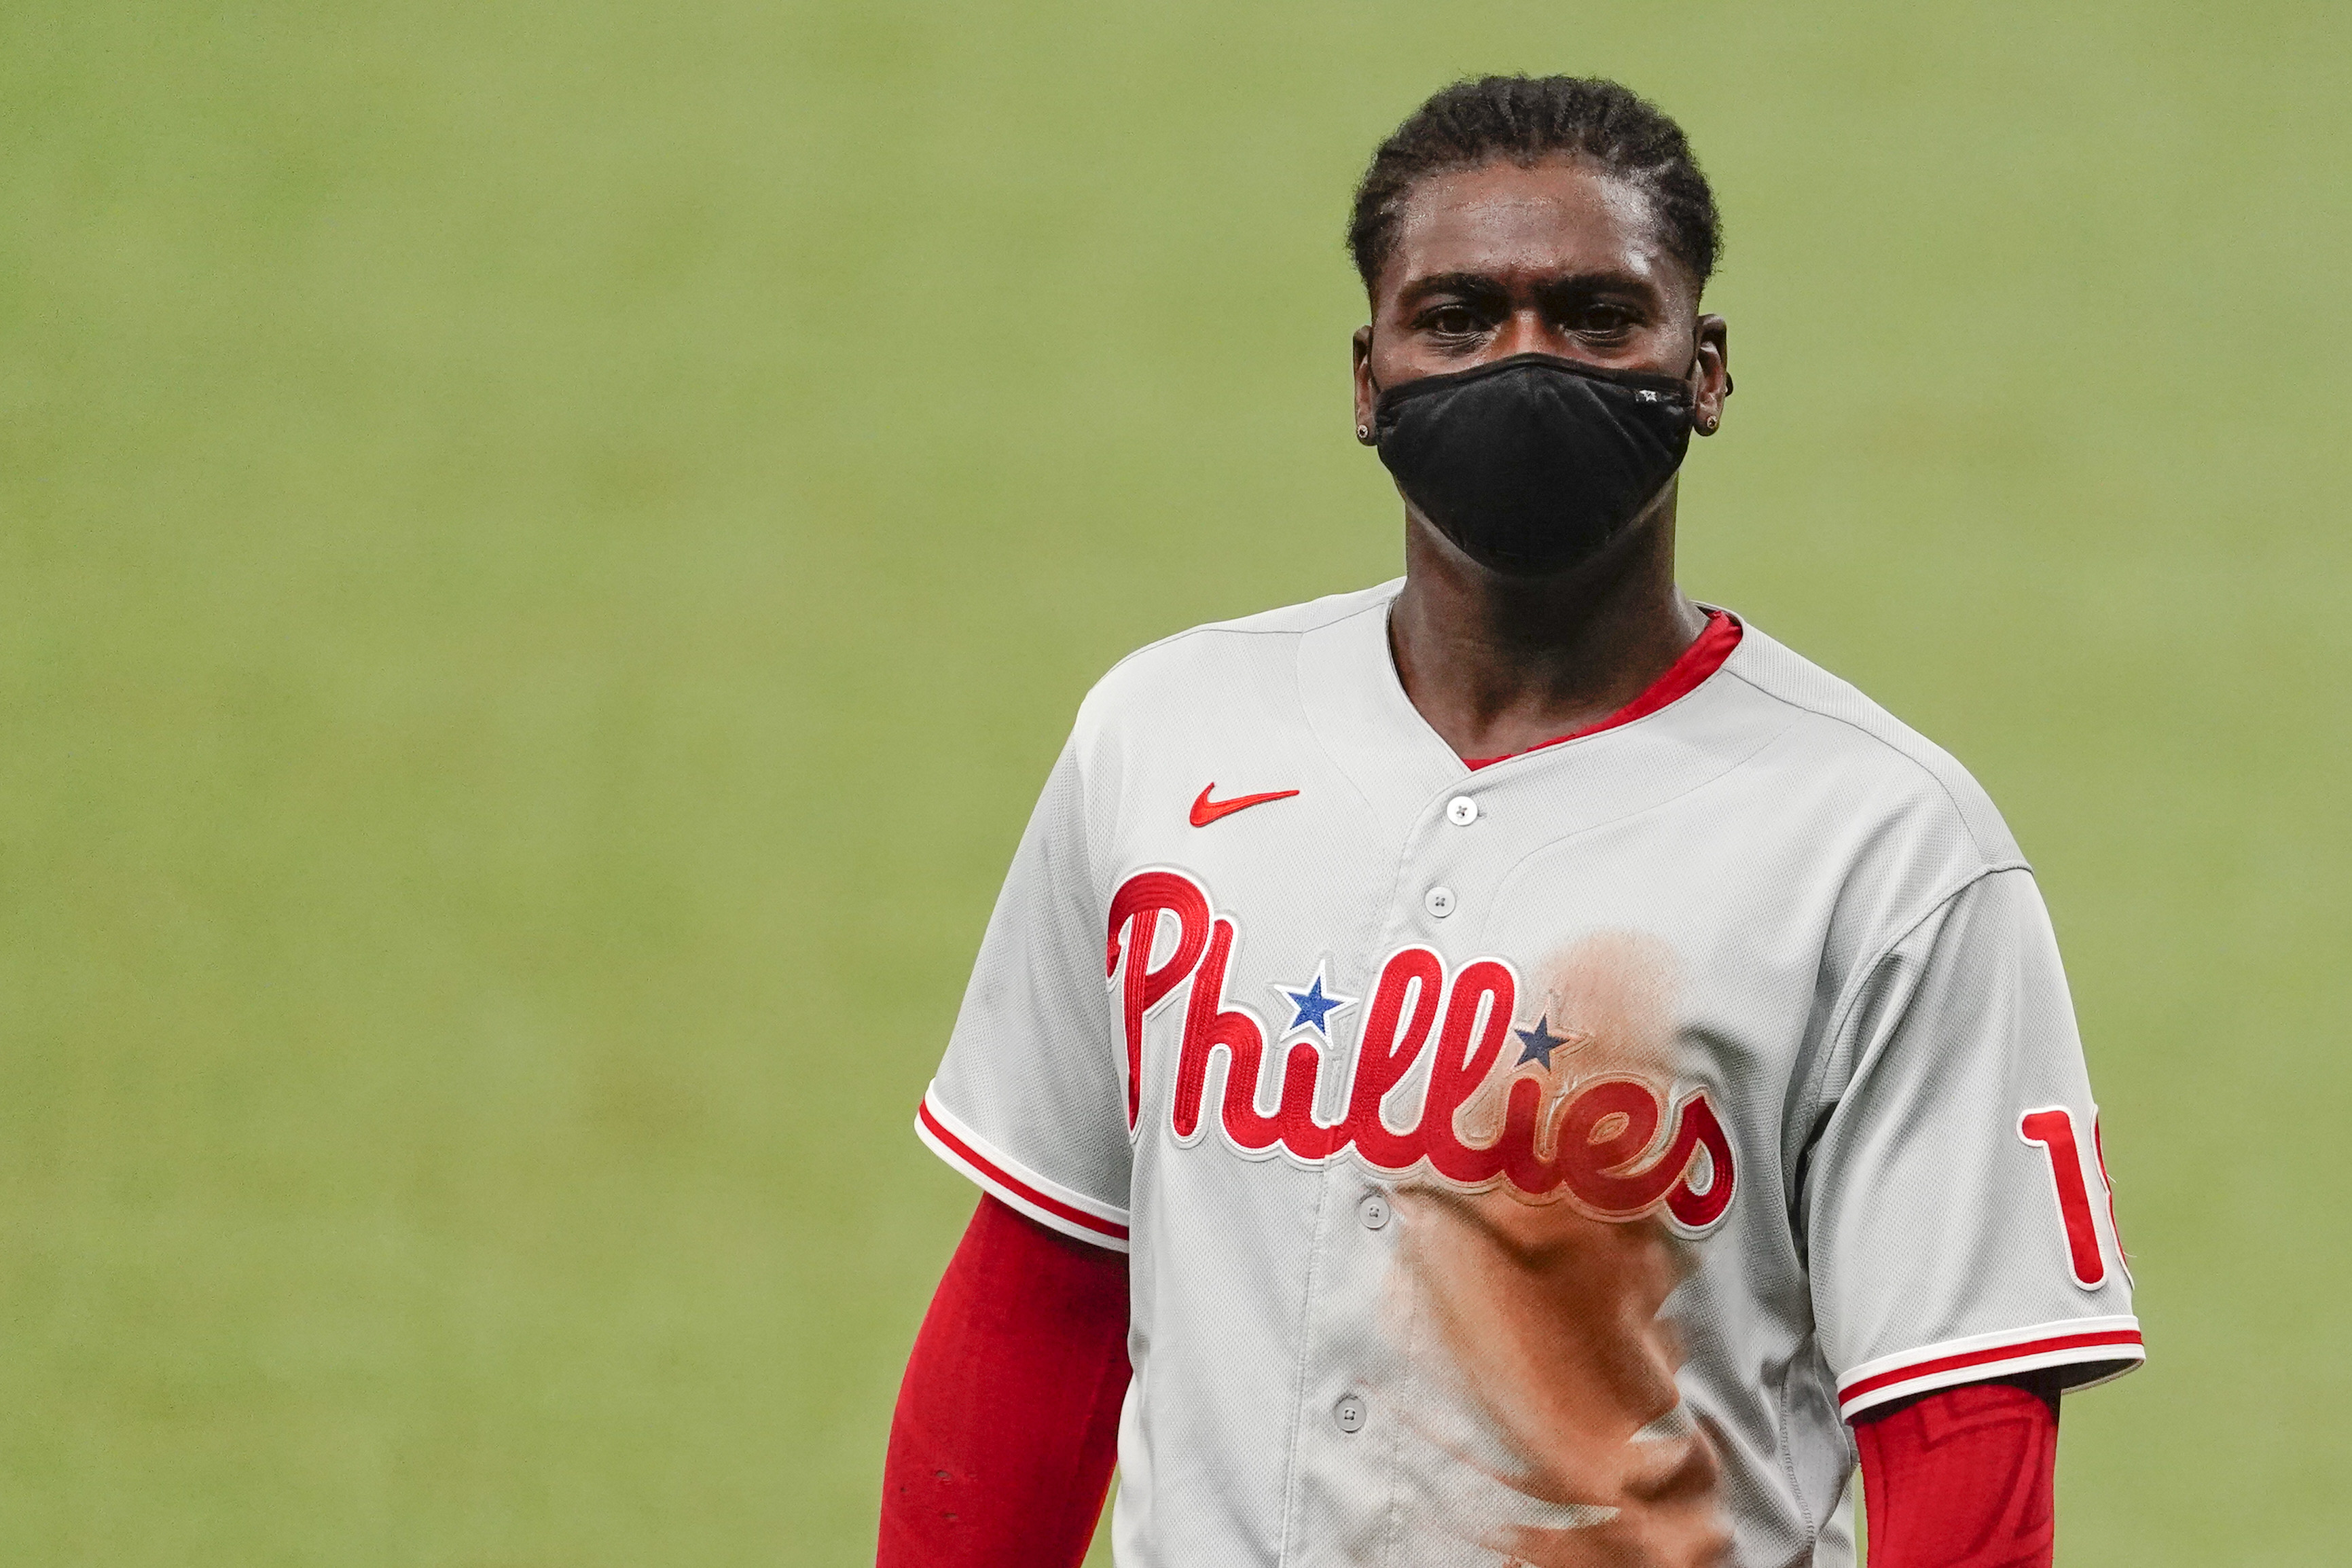 Didi Gregorius #18 of the Philadelphia Phillies looks on during the fourth inning against the Tampa Bay Rays at Tropicana Field on September 27, 2020 in St Petersburg, Florida.